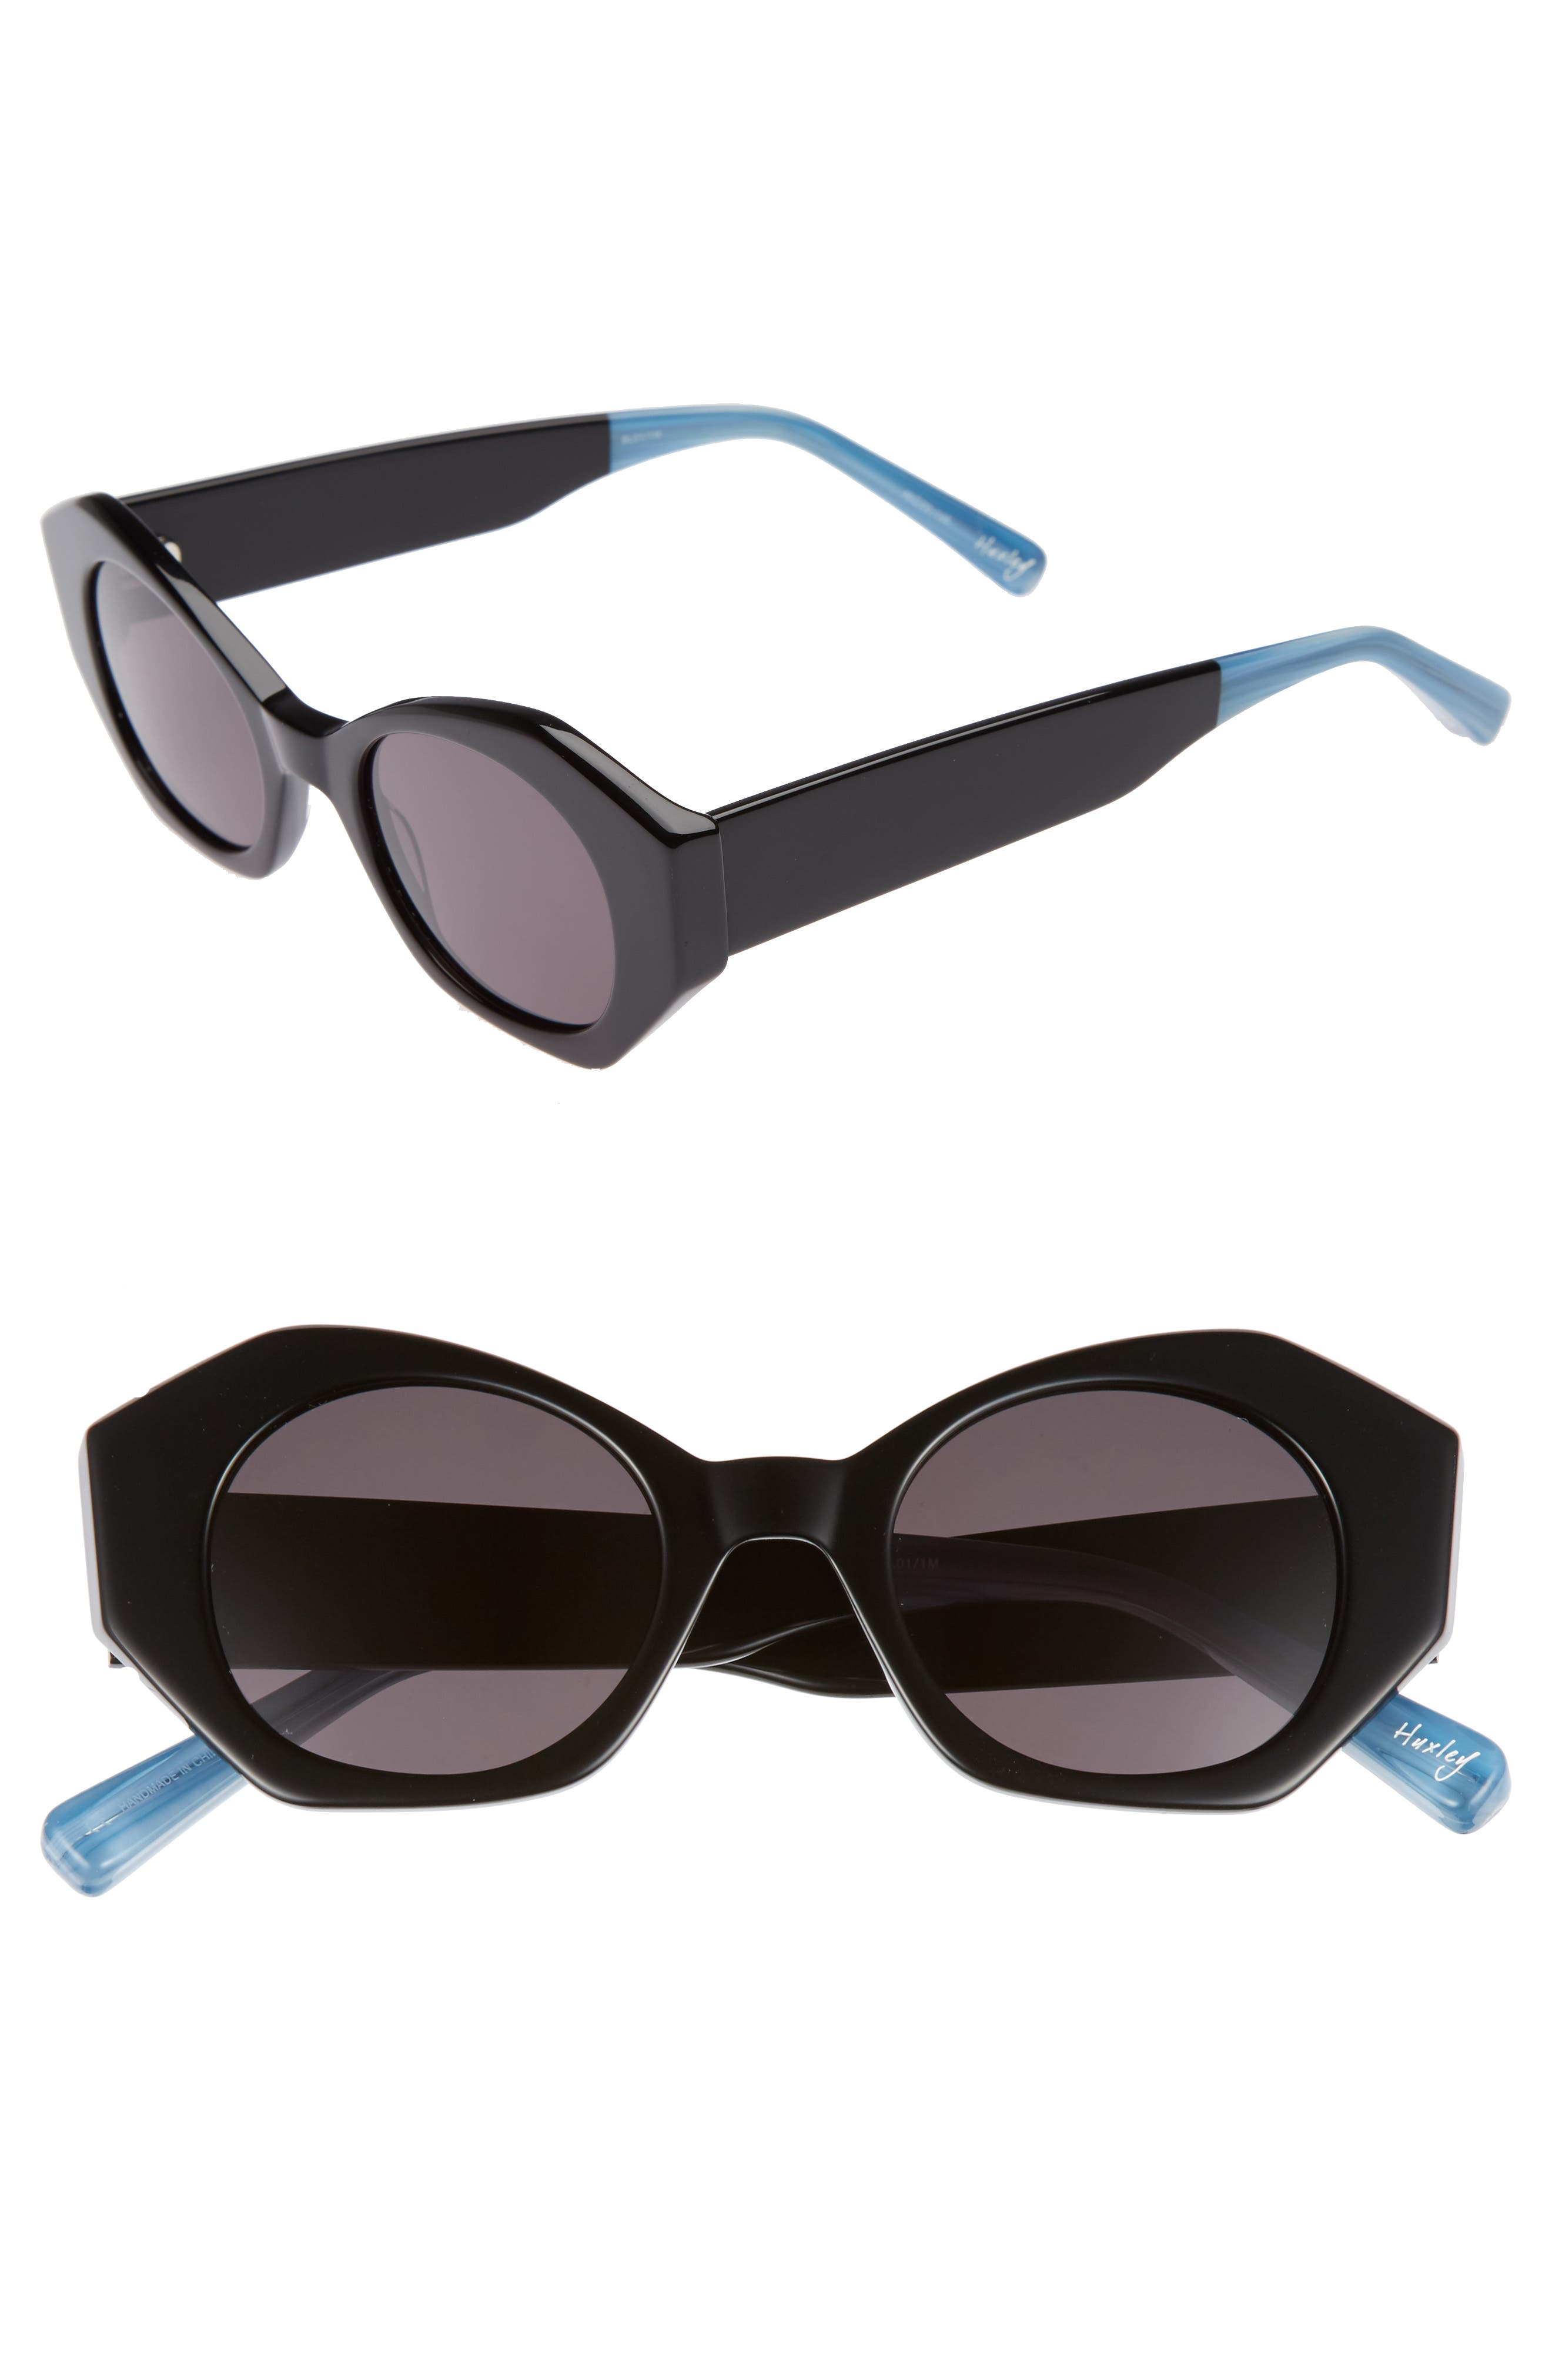 Huxley 46mm Geometric Sunglasses,                             Main thumbnail 1, color,